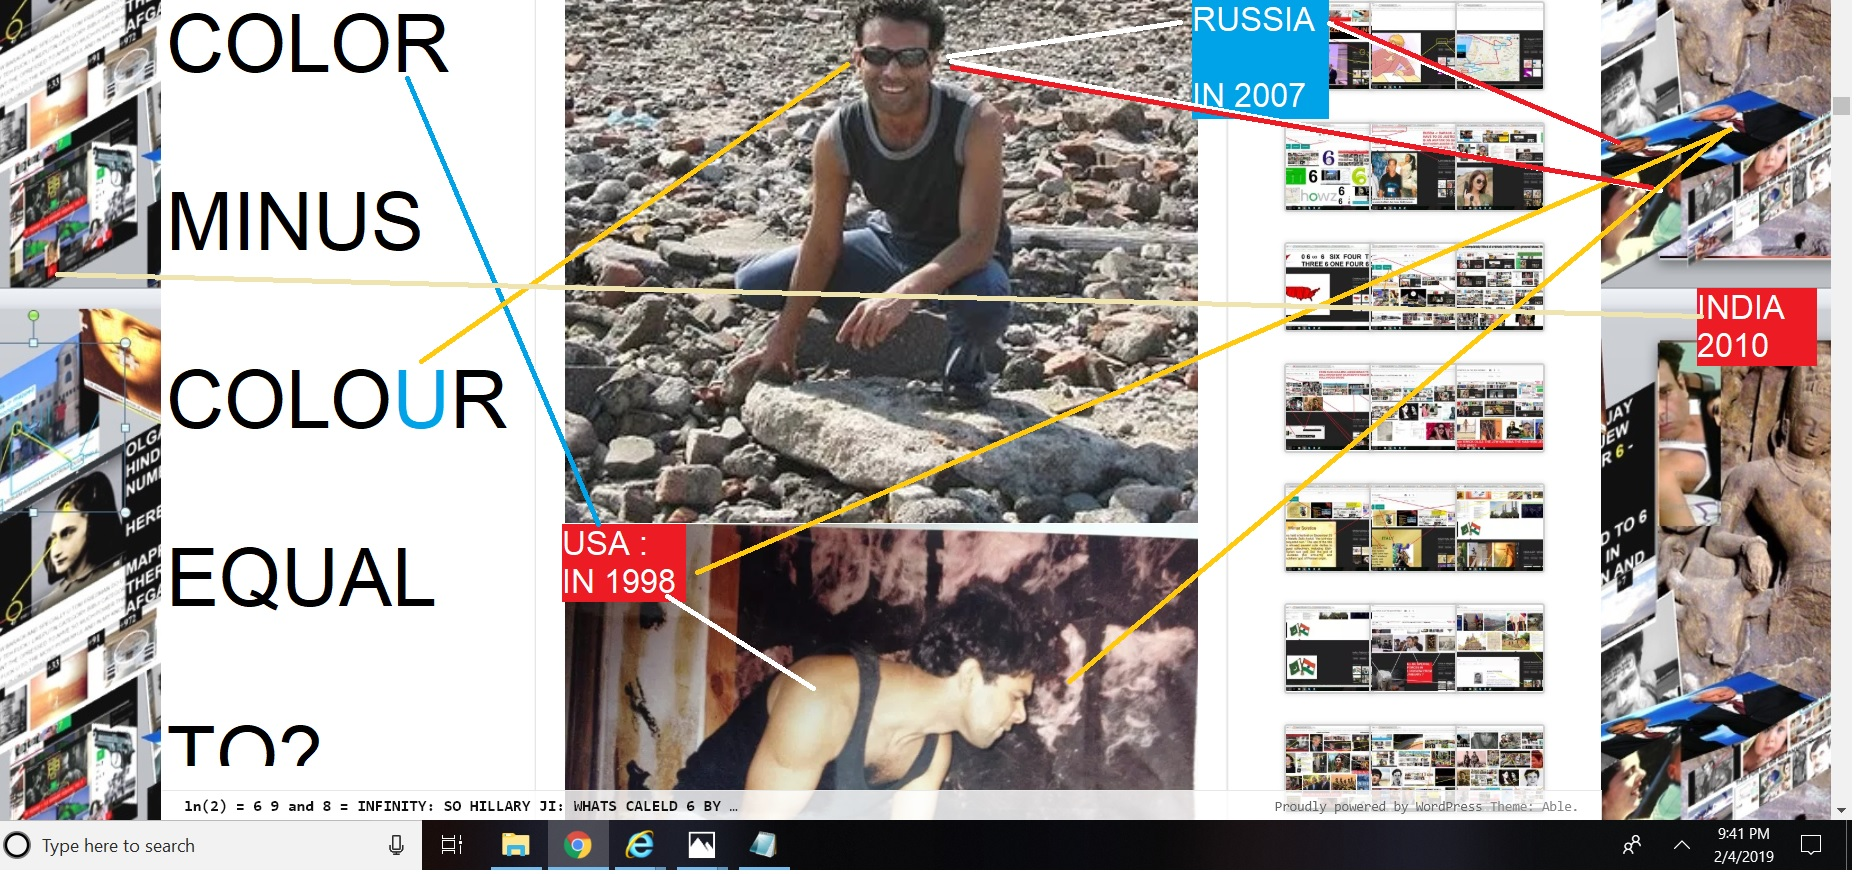 TO BRAACK OBAMA SANJAY DUTT AND BILL CLINTON AND CAN ANYONE ELSE - TEL WHATS COLOUR MINUS COLOR EQAUL TO IN INDIAN AMERICAN AND RUSSHIAN